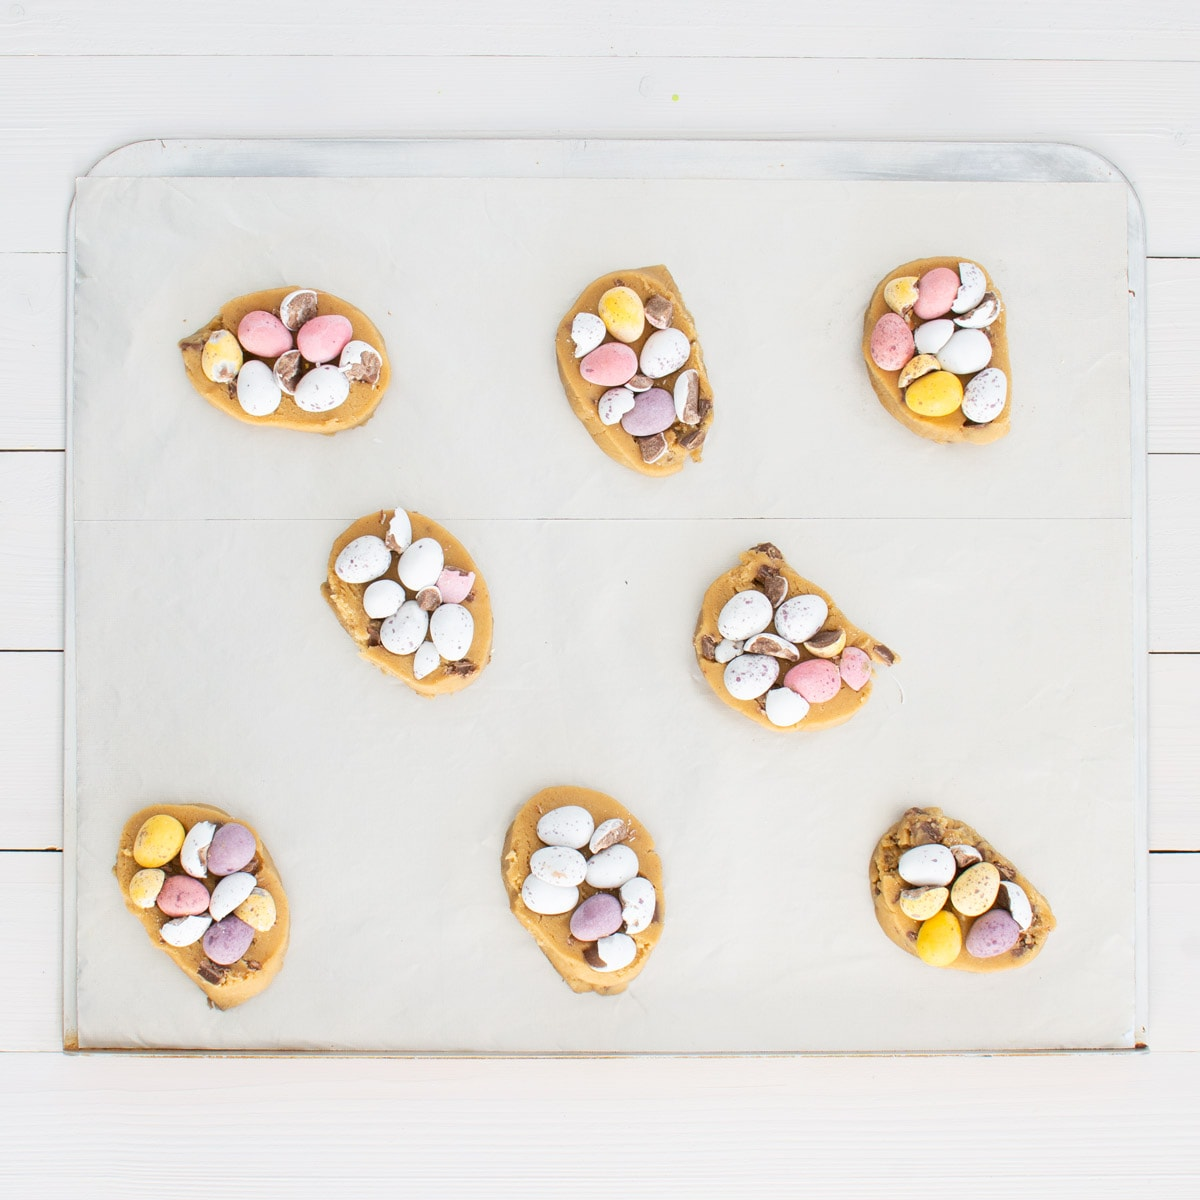 Unbaked mini egg cookies on a baking sheet with lots of mini eggs piles on top the dough.